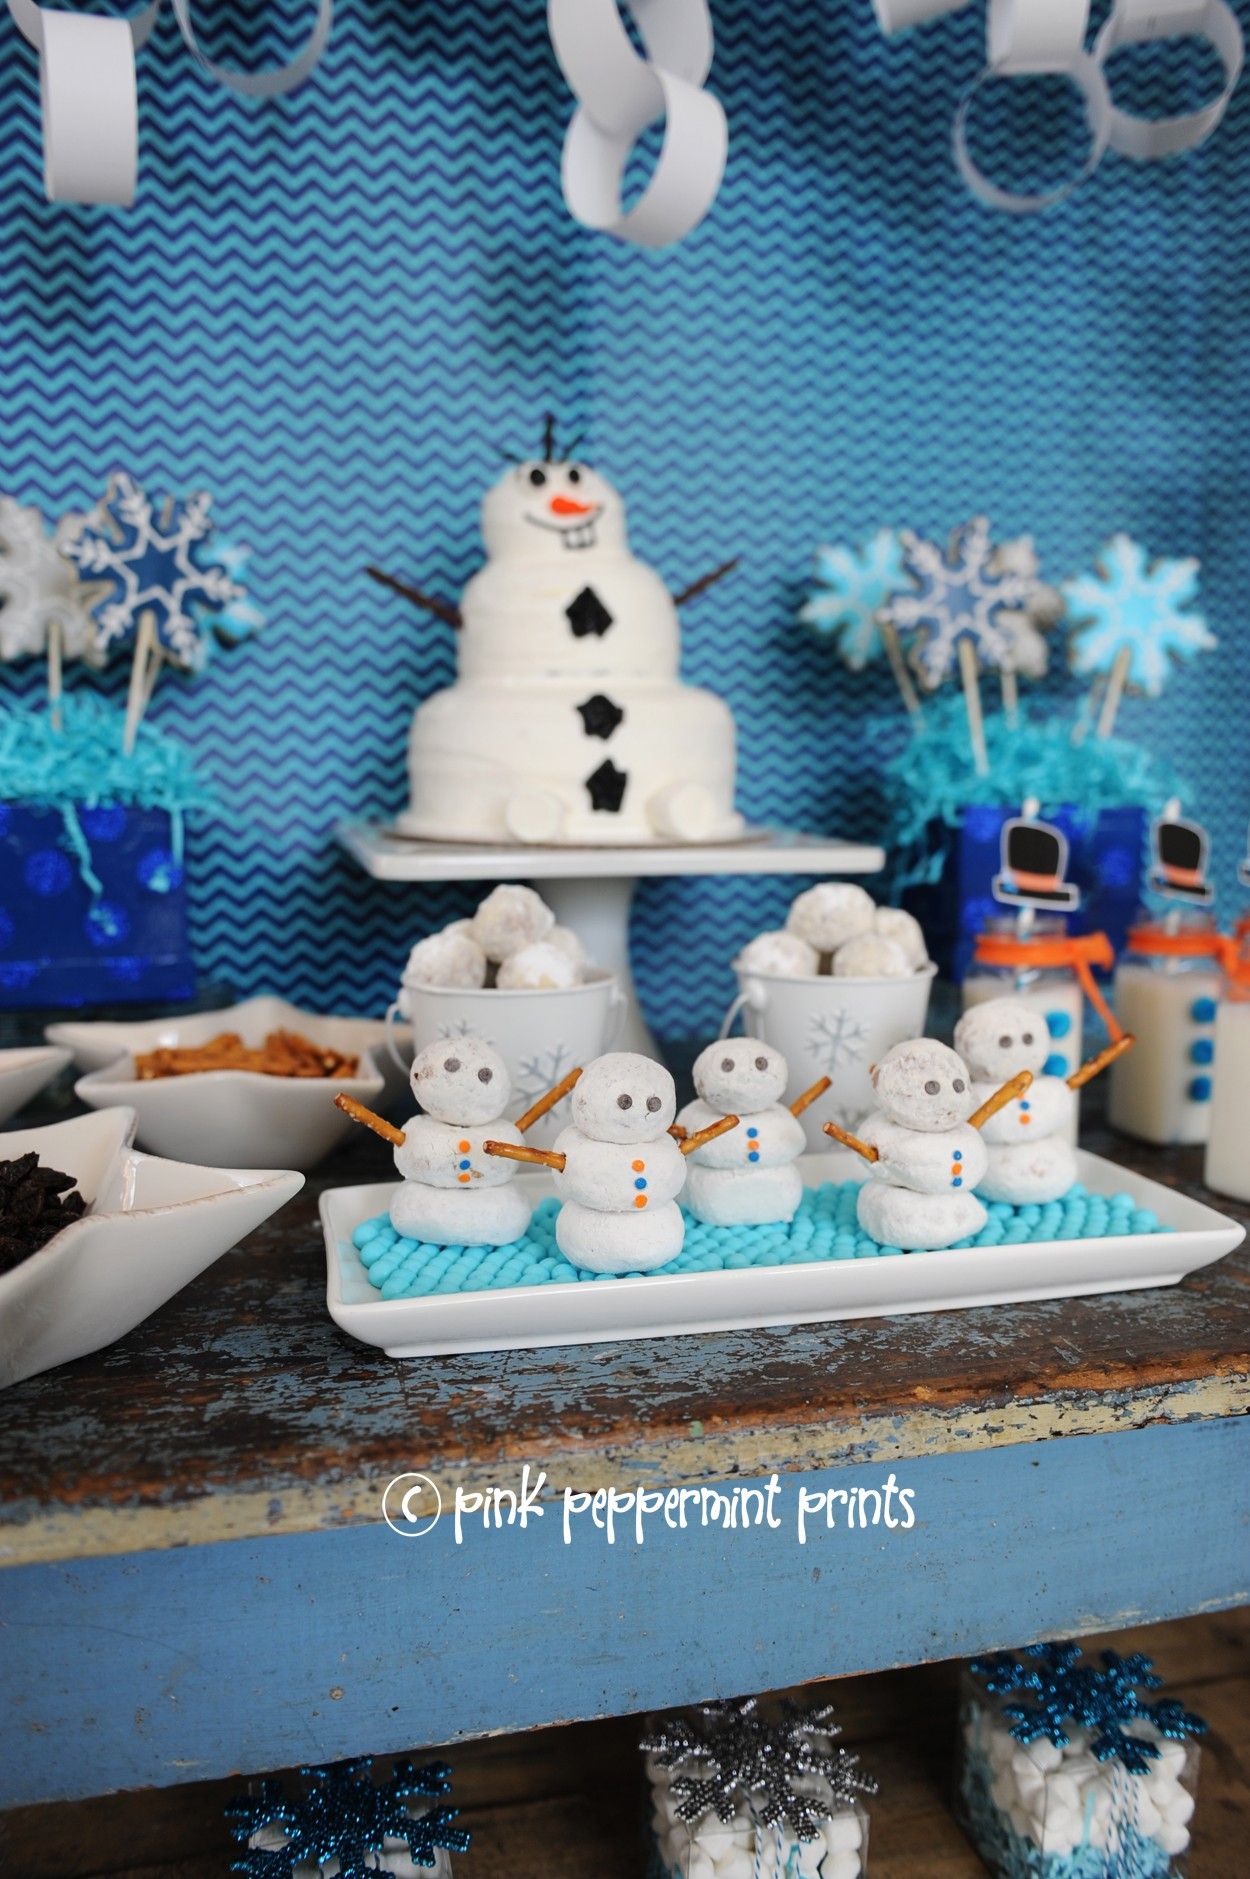 WinterSnow Parties A Disneys FROZEN Movie Inspired Snowman Party